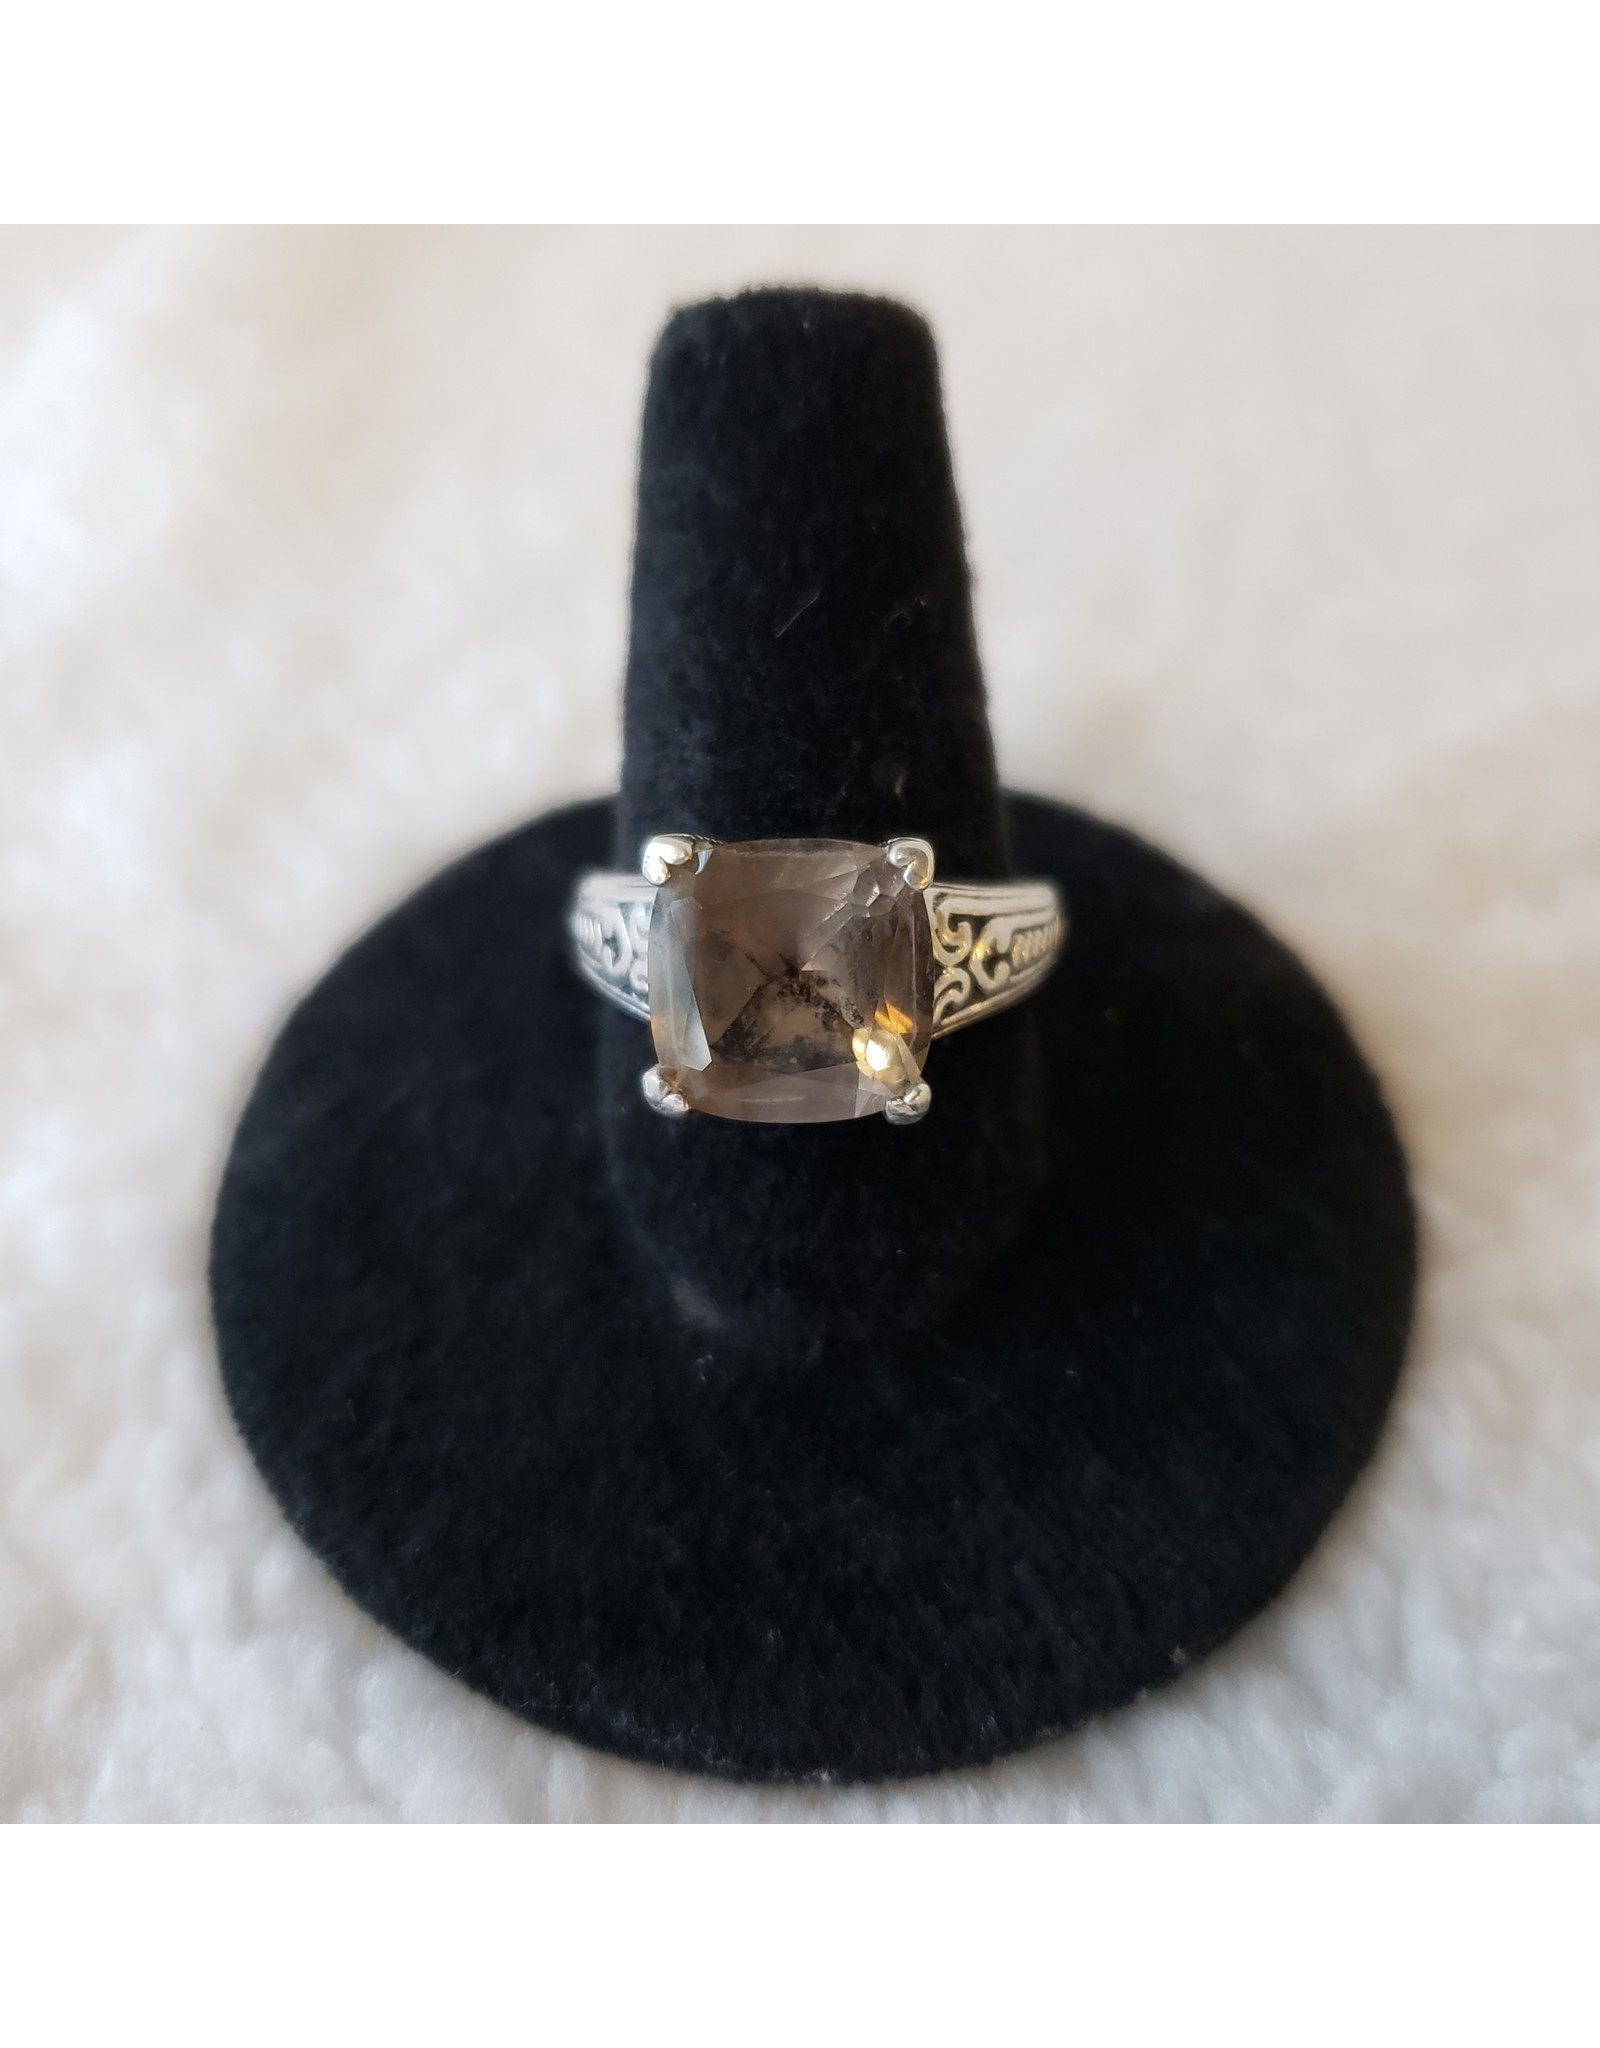 Large Faceted Smoky Quartz Ring - Size 7